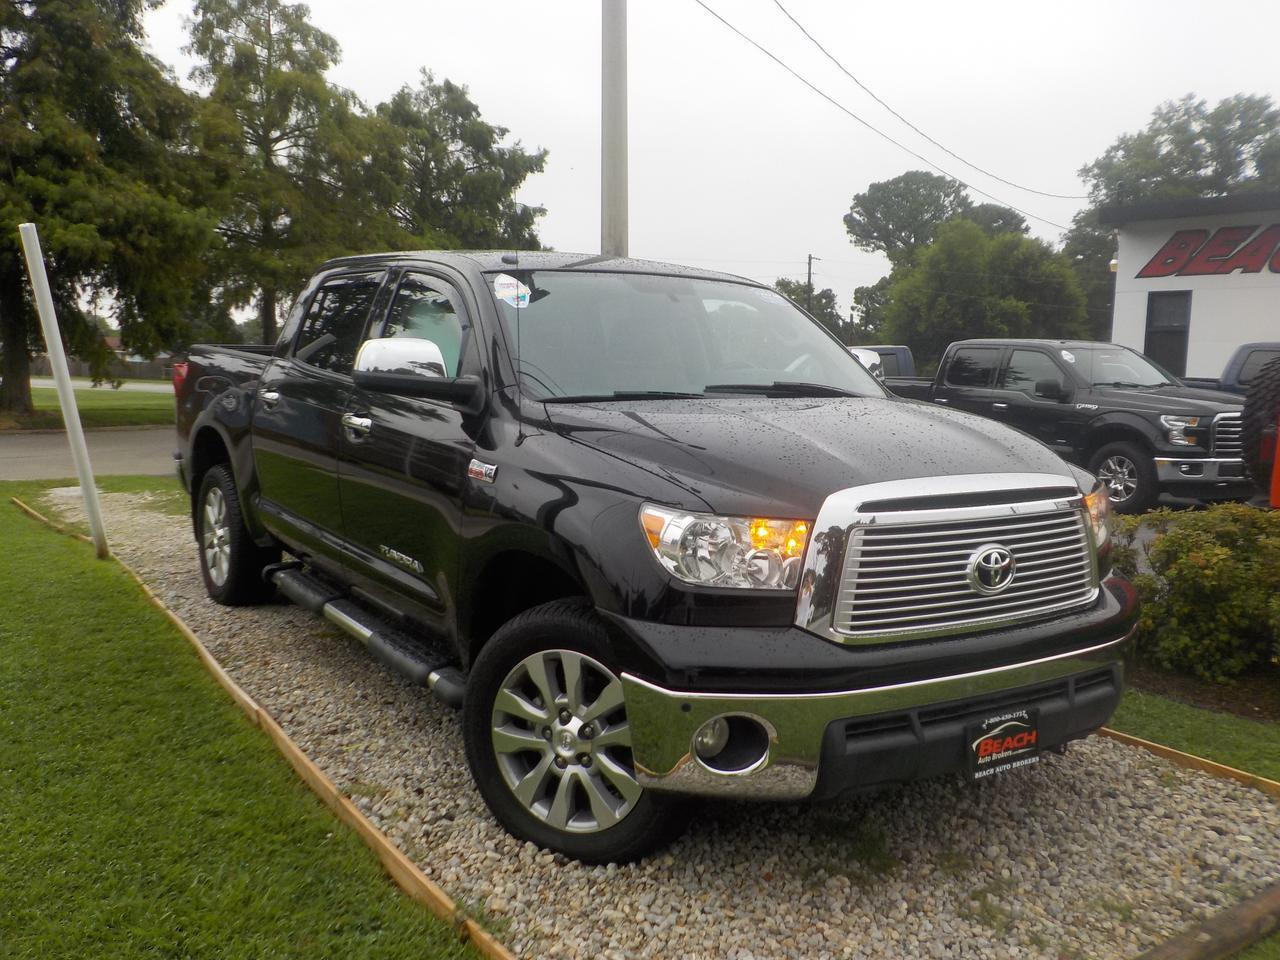 "2013 TOYOTA TUNDRA PLATINUM CREWMAX 4X4, WARRANTY, LEATHER, SUNROOF, NAV, JBL SOUND, HEATED/COOLED SEATS, 20"" RIMS!"